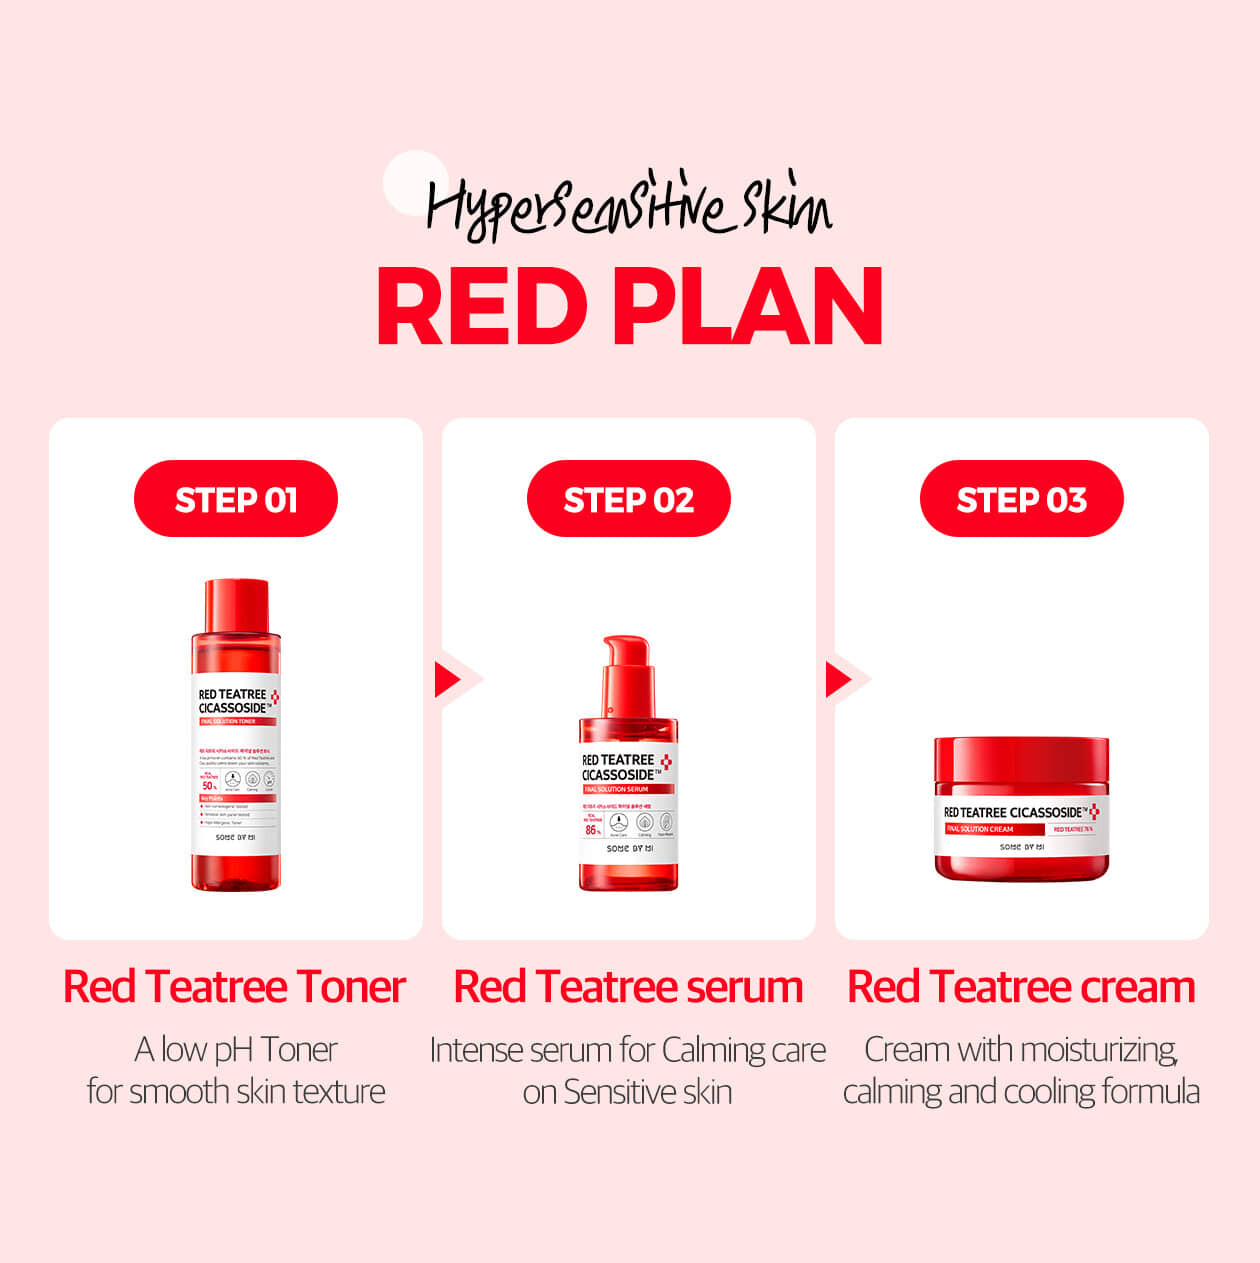 Somebymi] Some By Mi Red Teatree Cicassoside Final Solution Set - (Toner  150ml + Serum 50ml + Cream 60g)                   [BeautyBabe]      | Lazada